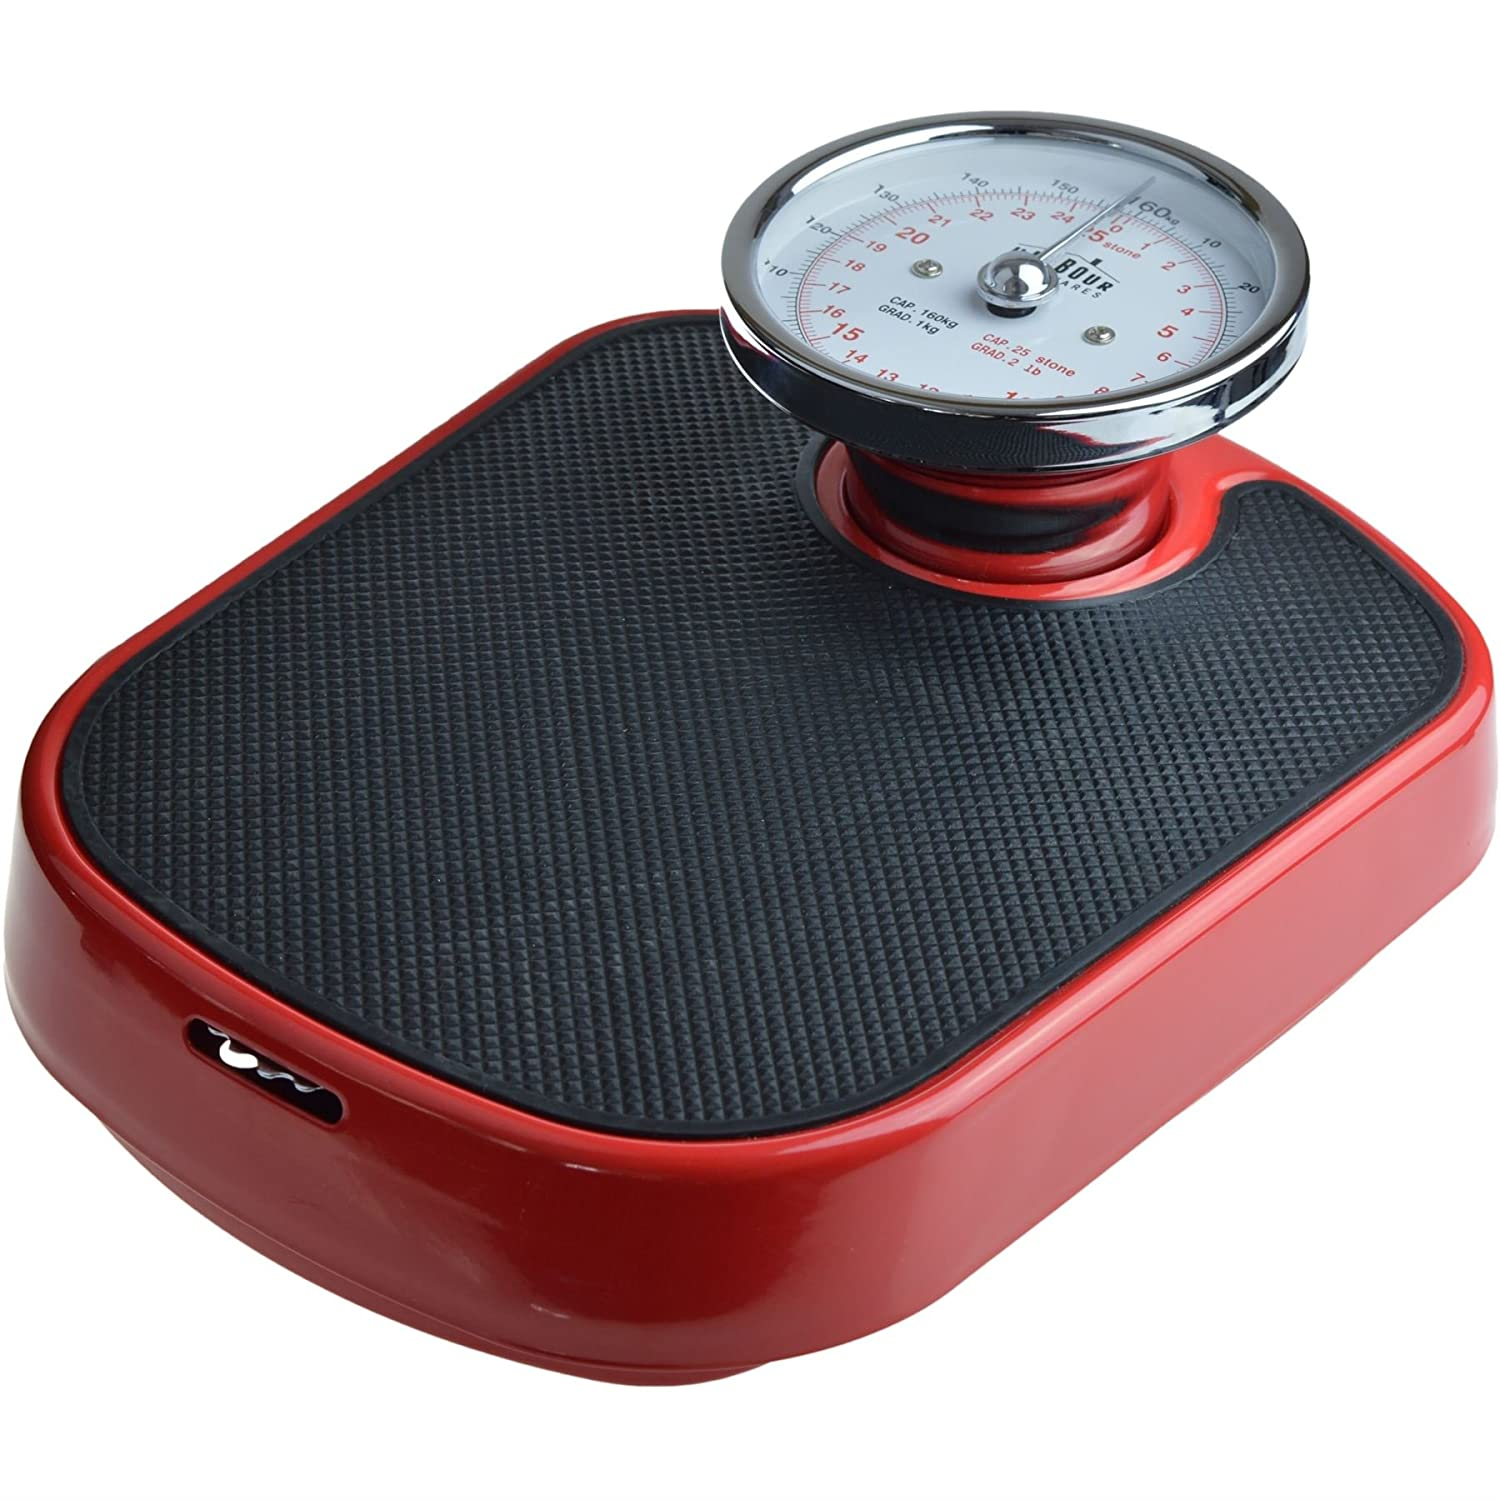 Harbour Housewares Traditional Red Bathroom Scales - 25st (160kg)